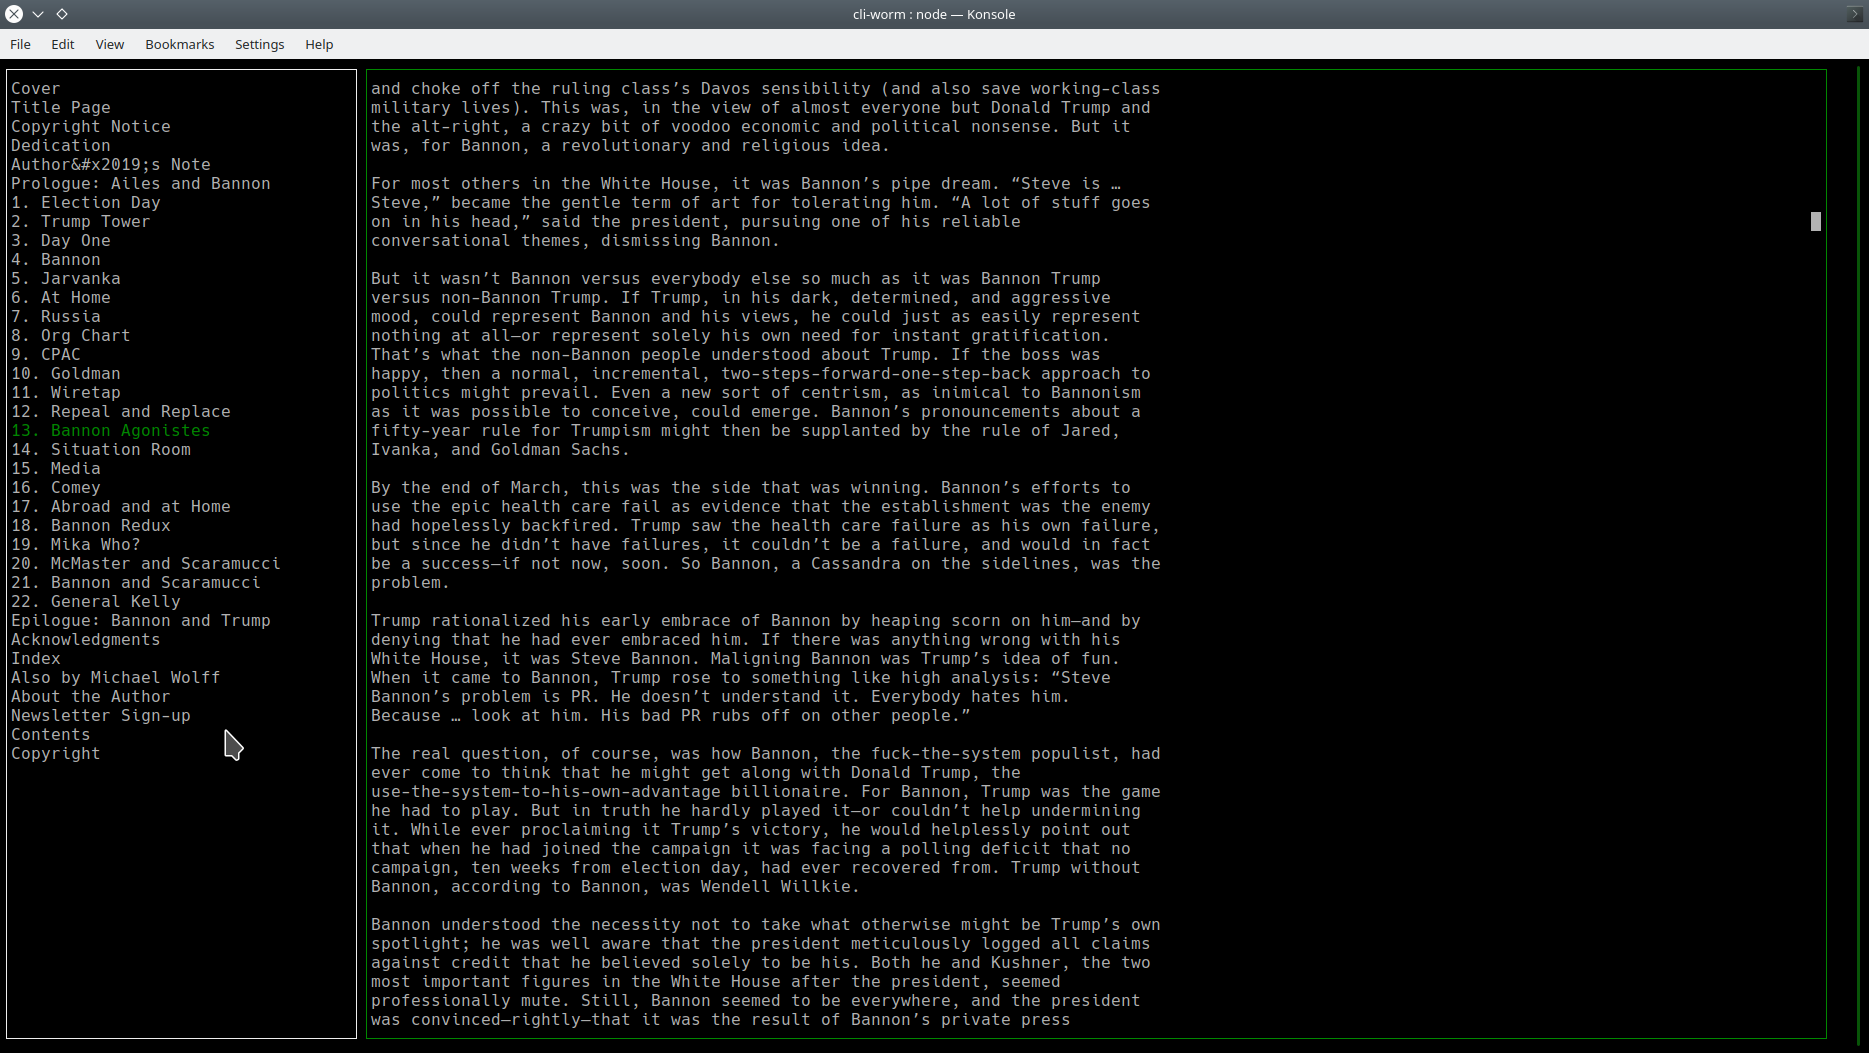 cli-worm screen shot